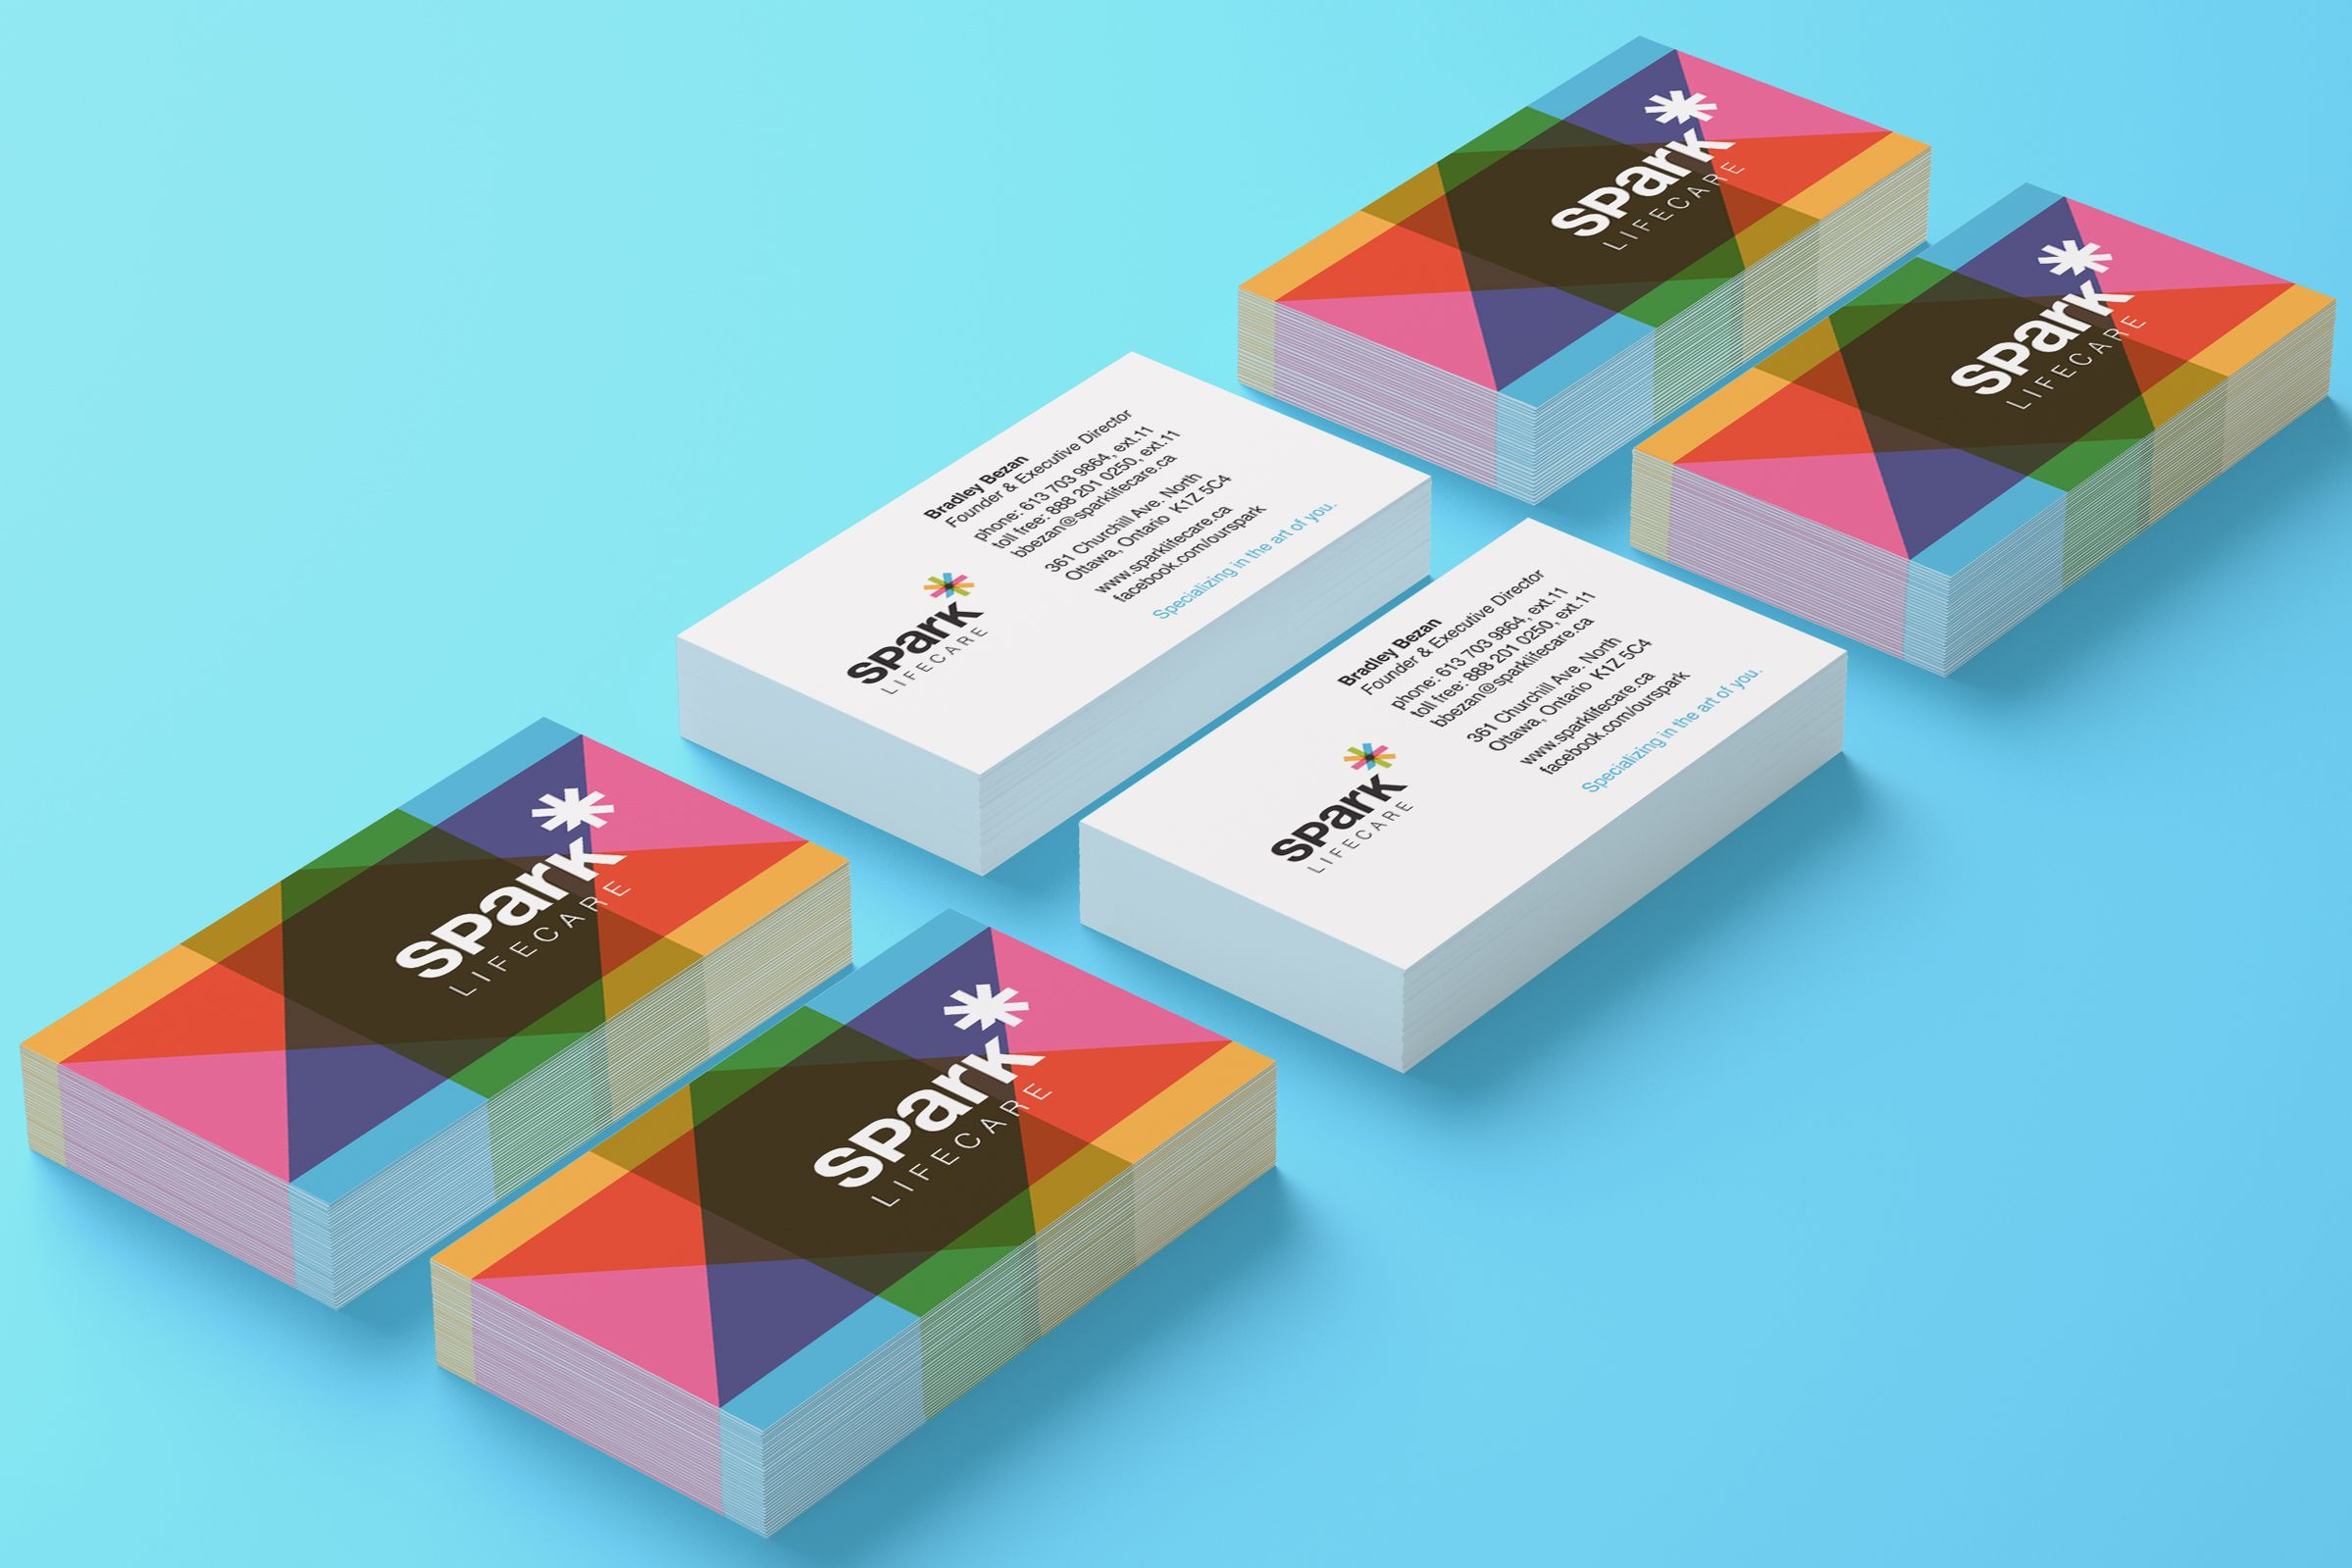 Business Cards for Spark Lifecare, life services organization by Ottawa Graphic Designer idApostle